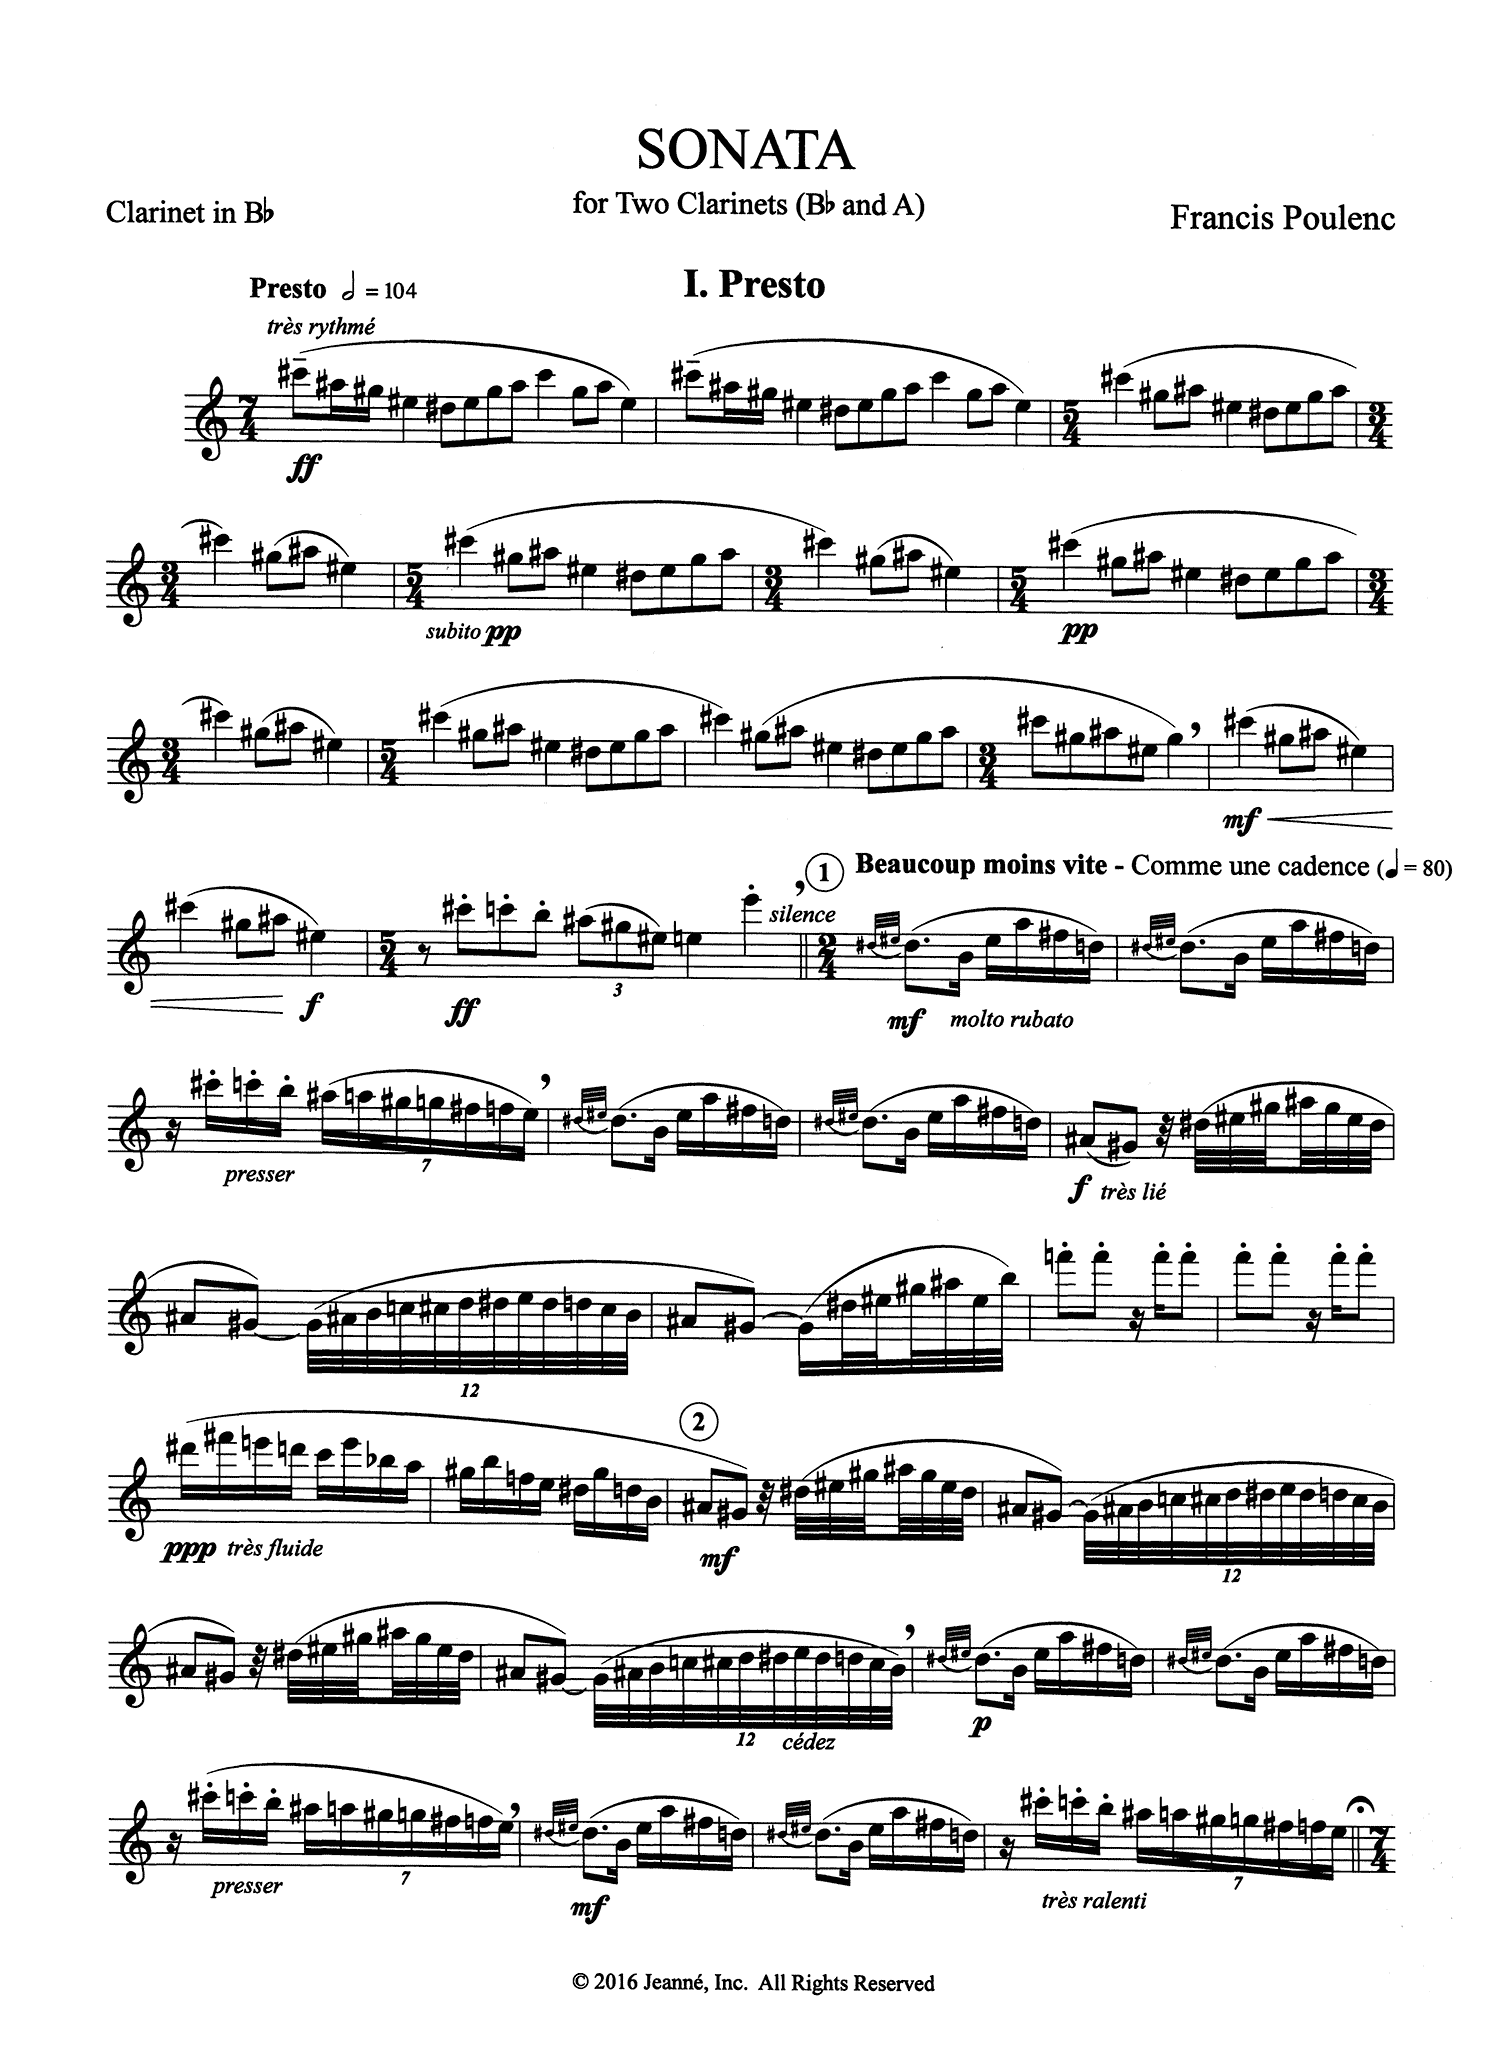 Poulenc Sonata for Two Clarinets, FP 7 B-flat Clarinet part